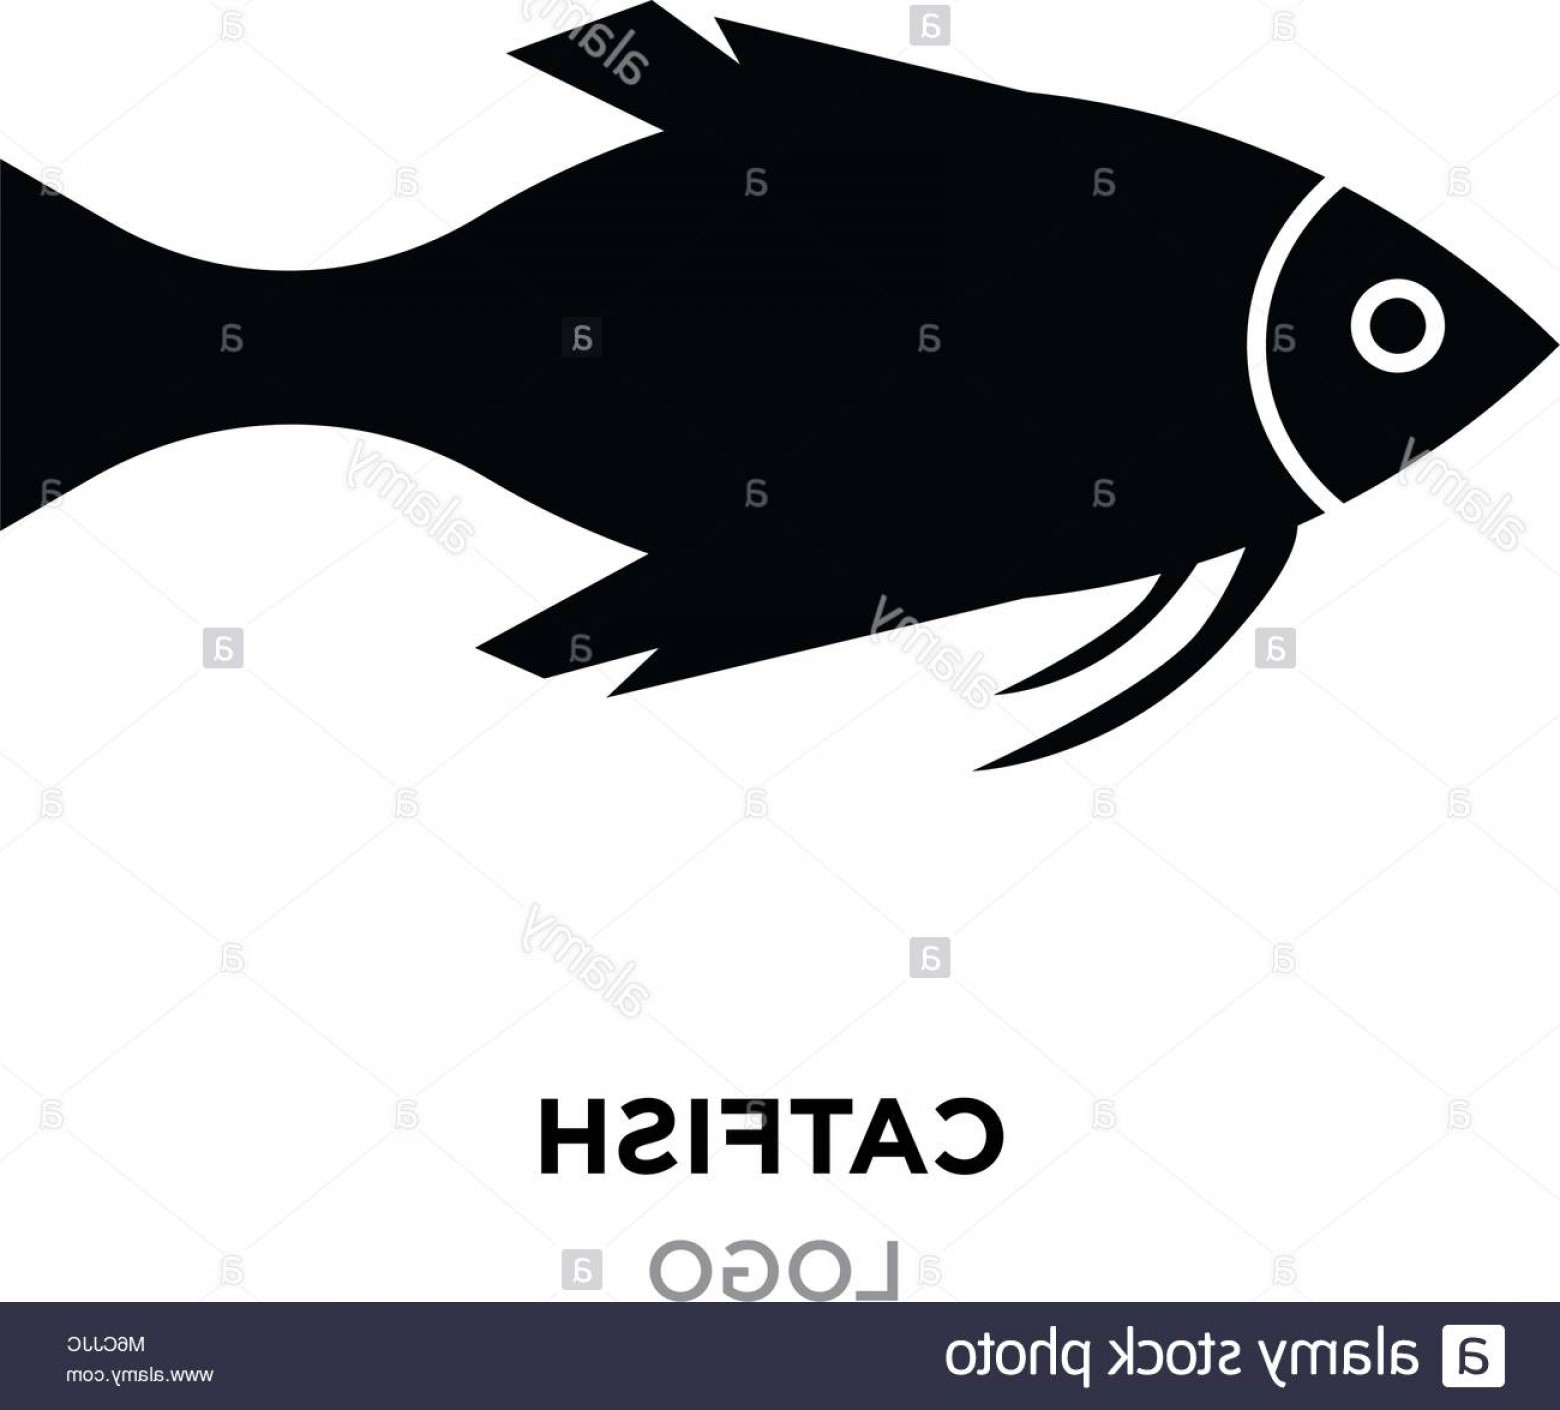 Catfish Vector Logo: Stock Photo Catfish Logo Black Catfishraccoons Head Logo For Sport Club Or Team